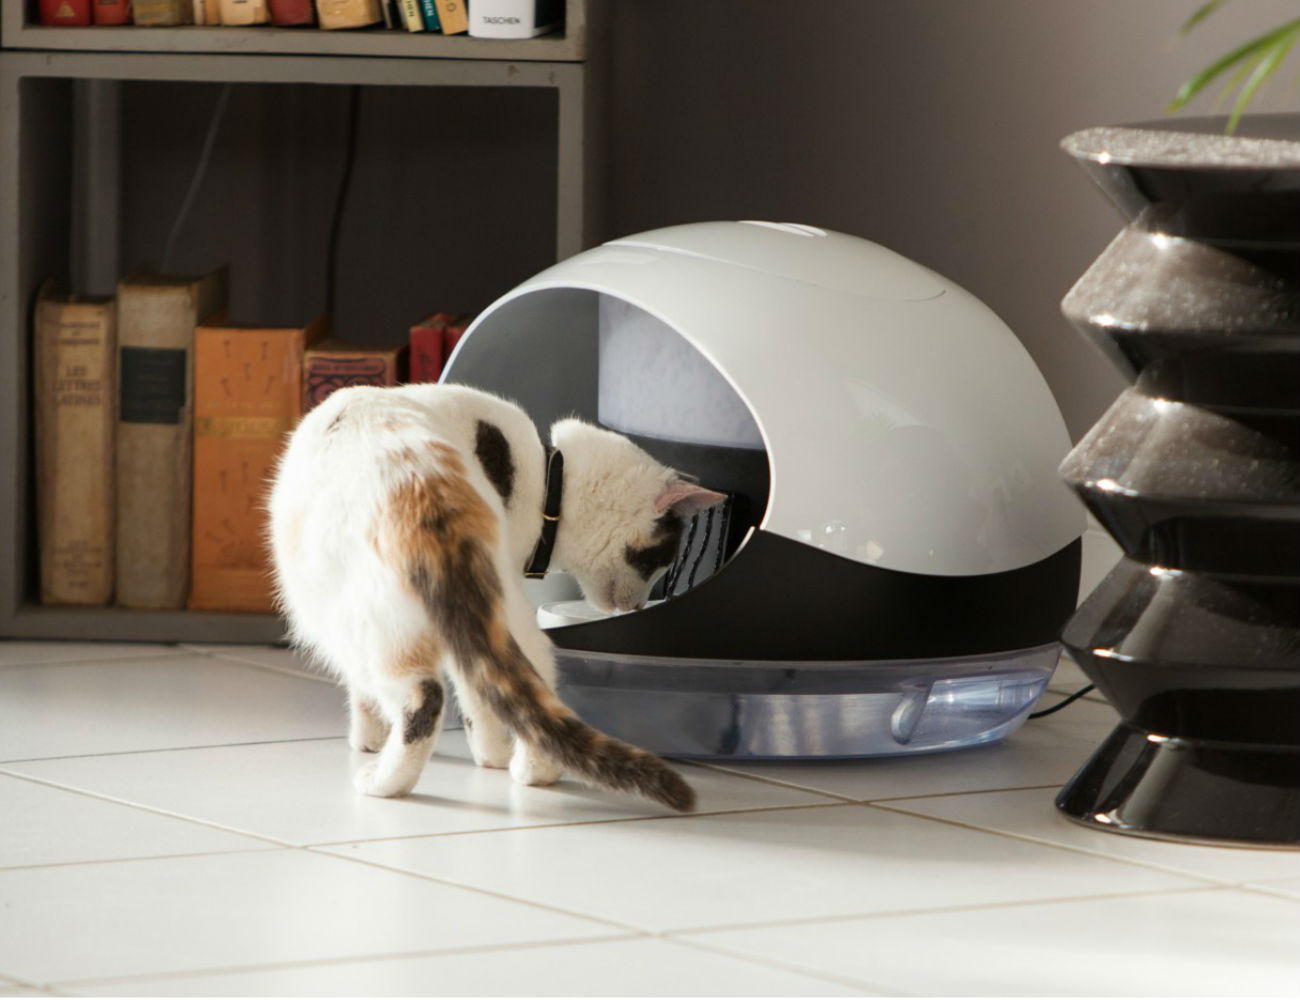 Catspad Smart Food and Water Dispenser for Cats